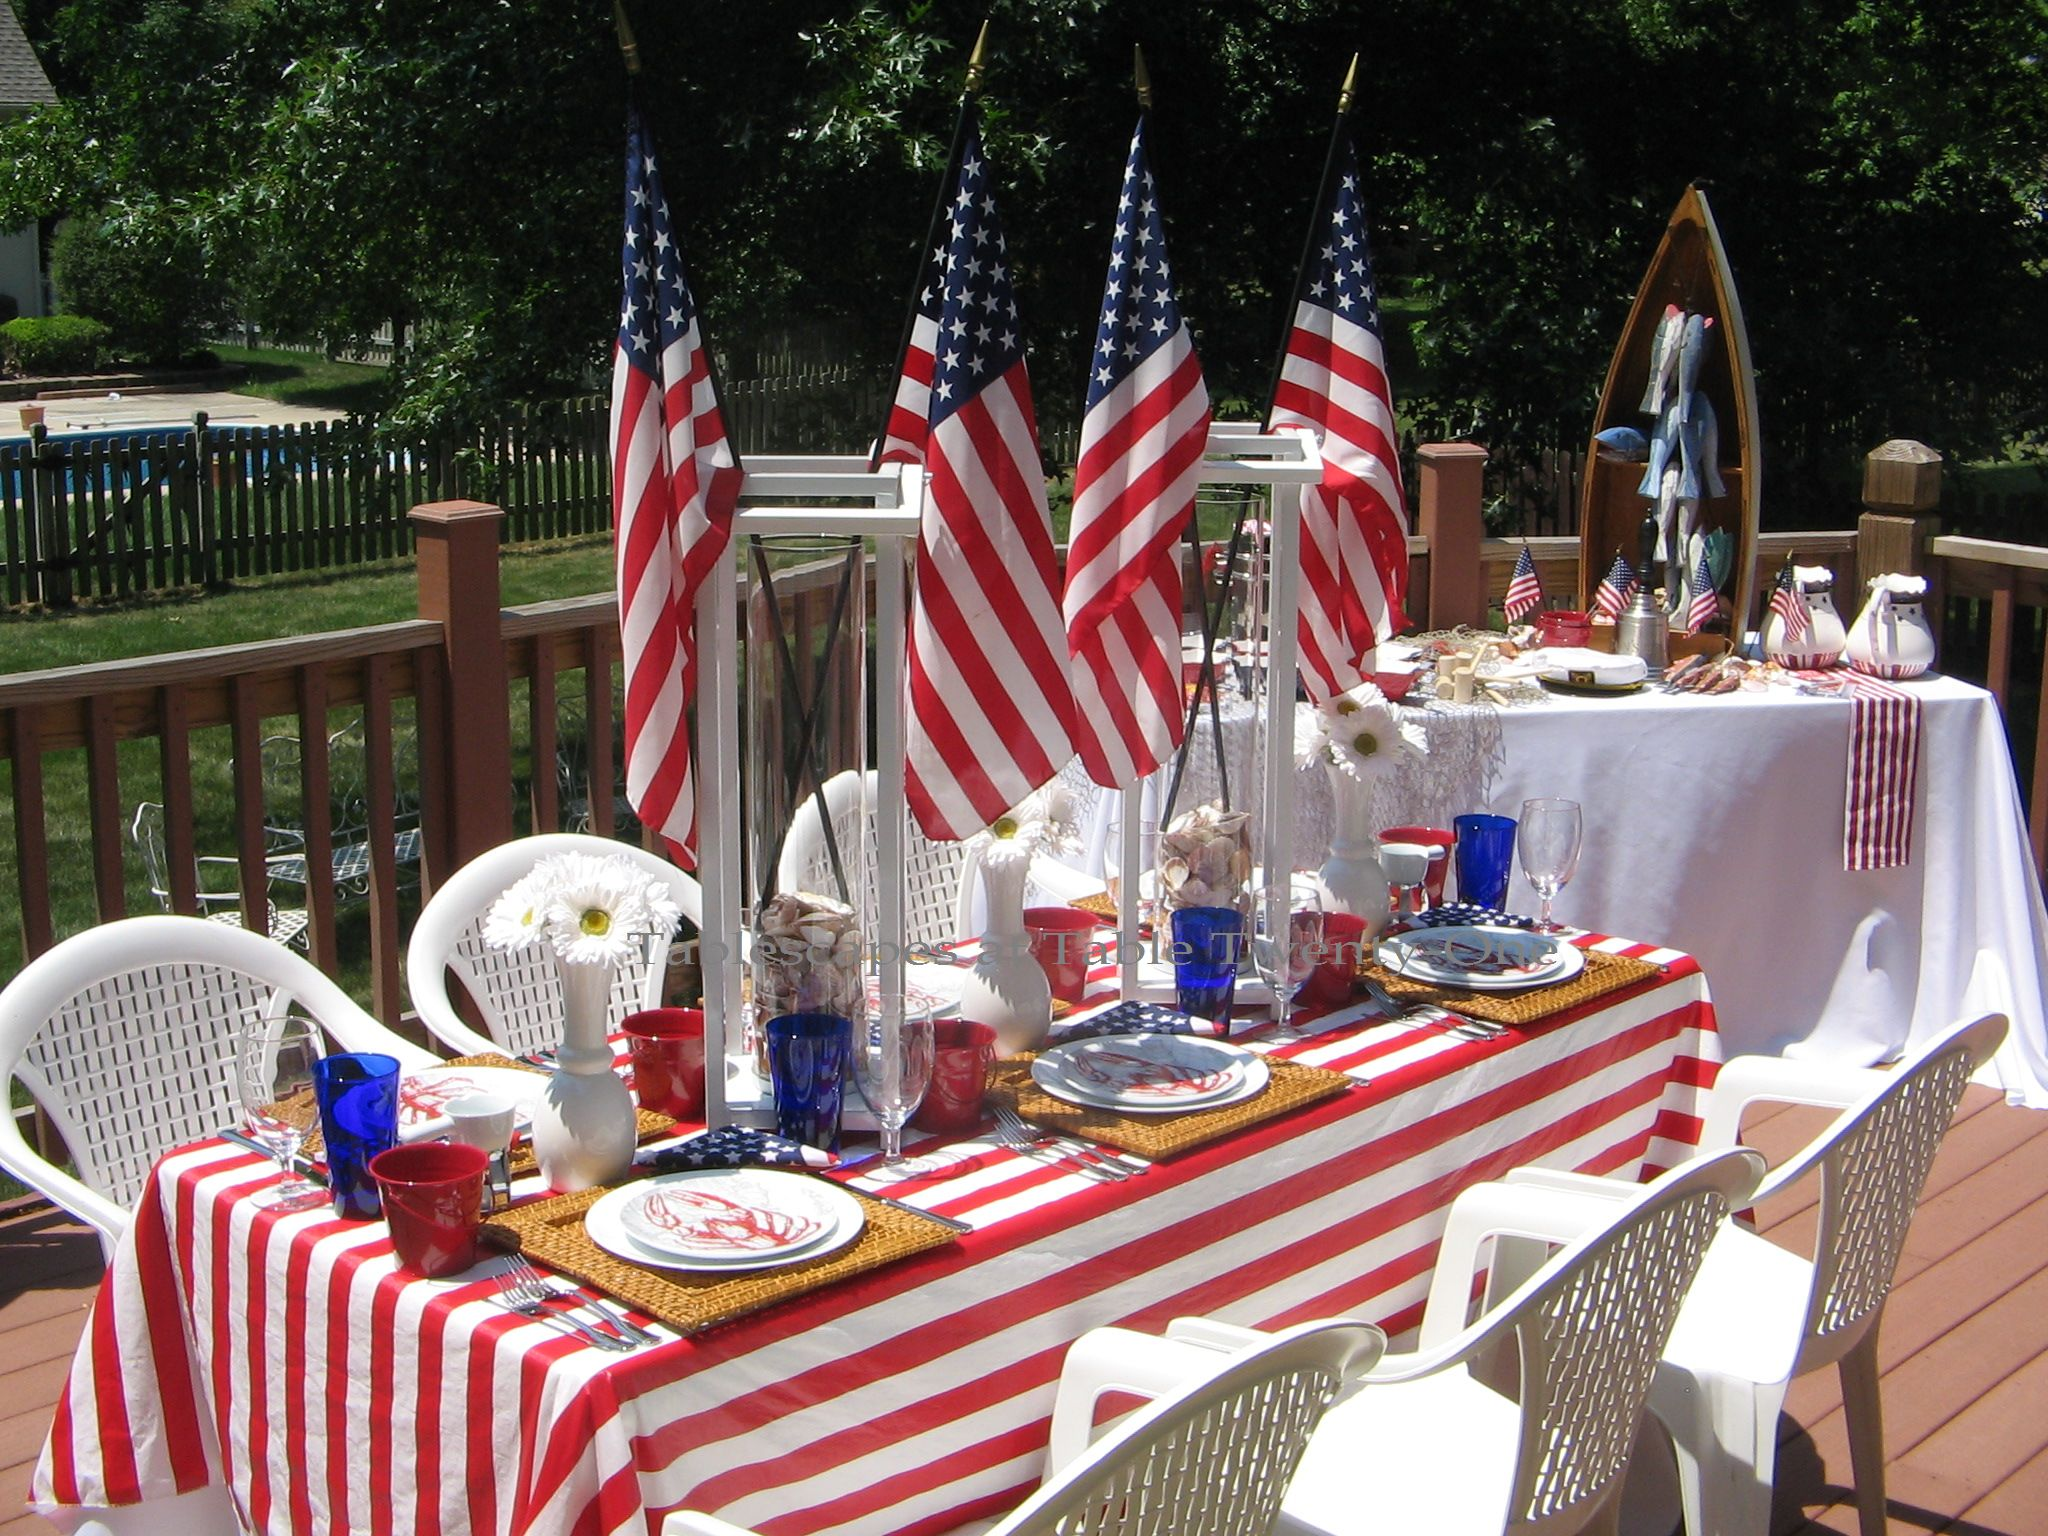 Tremendous All American Seafood Boil Tablescapes At Table Twenty One Download Free Architecture Designs Pendunizatbritishbridgeorg